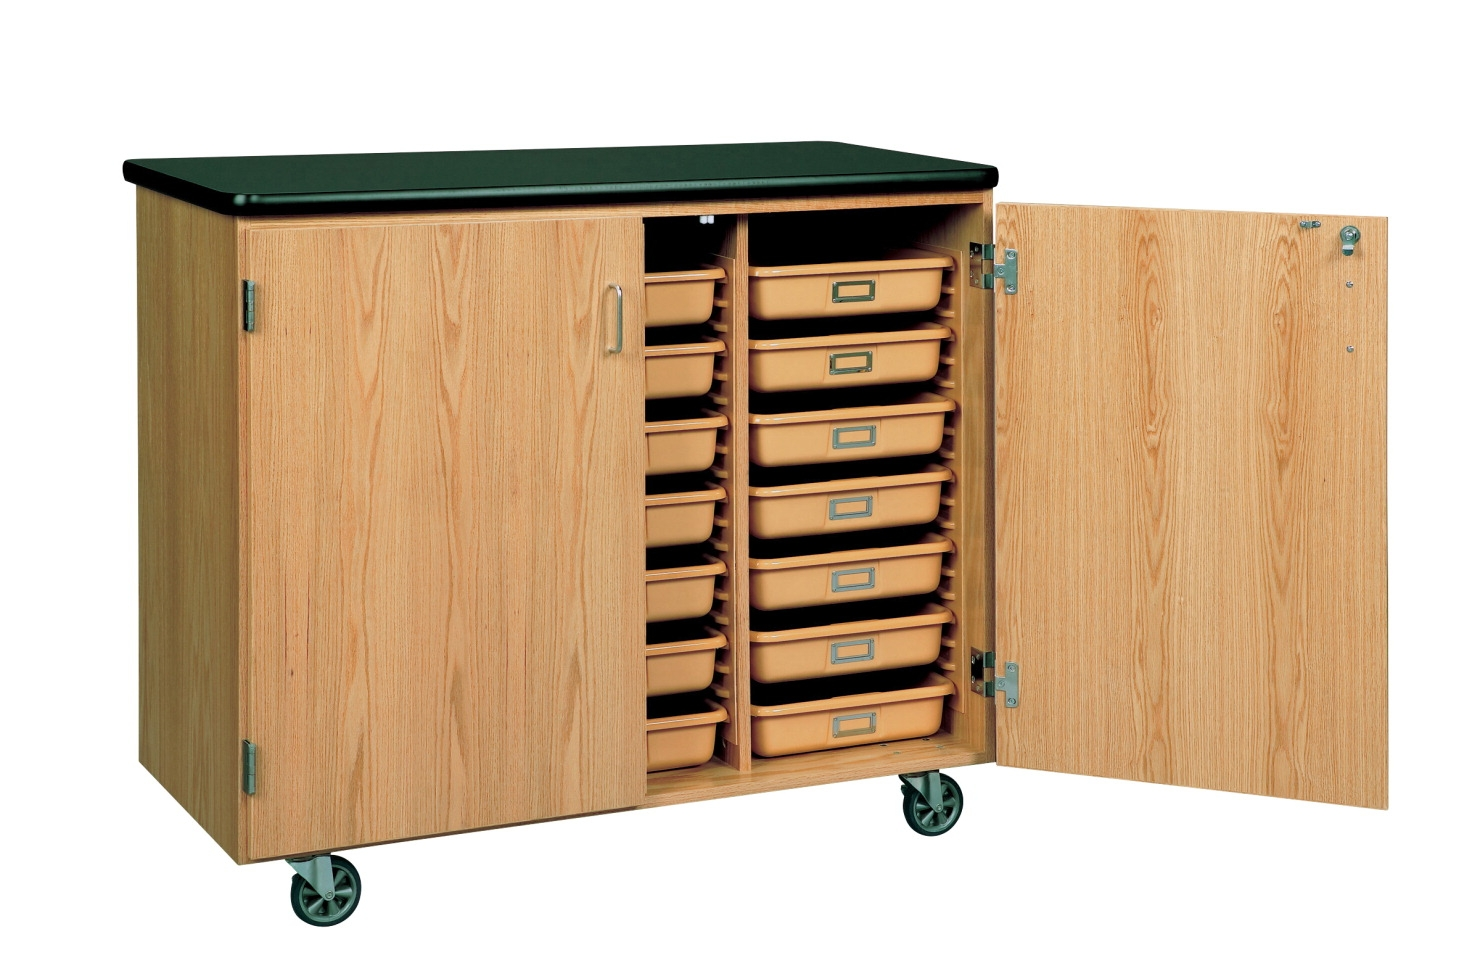 Diversified Woodcrafts Mobile Tote Tray Storage Cabinet; 41-1/2 In H X 48 In W X 24 In D; Oak; Earth-friendly Uv - 1129098 - Facilities Management Cabinetry Carts And Lockers Ot Mobile Therapy 1129098